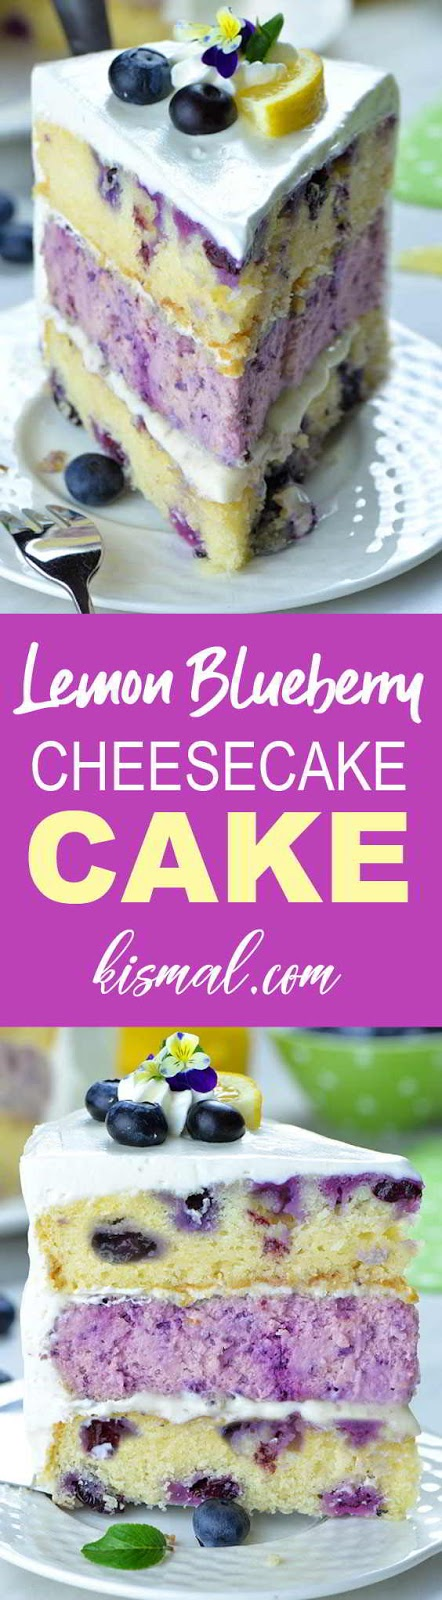 Lemon Blueberry Cheesecake Cake #cakes #cheesecakes #desserts #blueberries